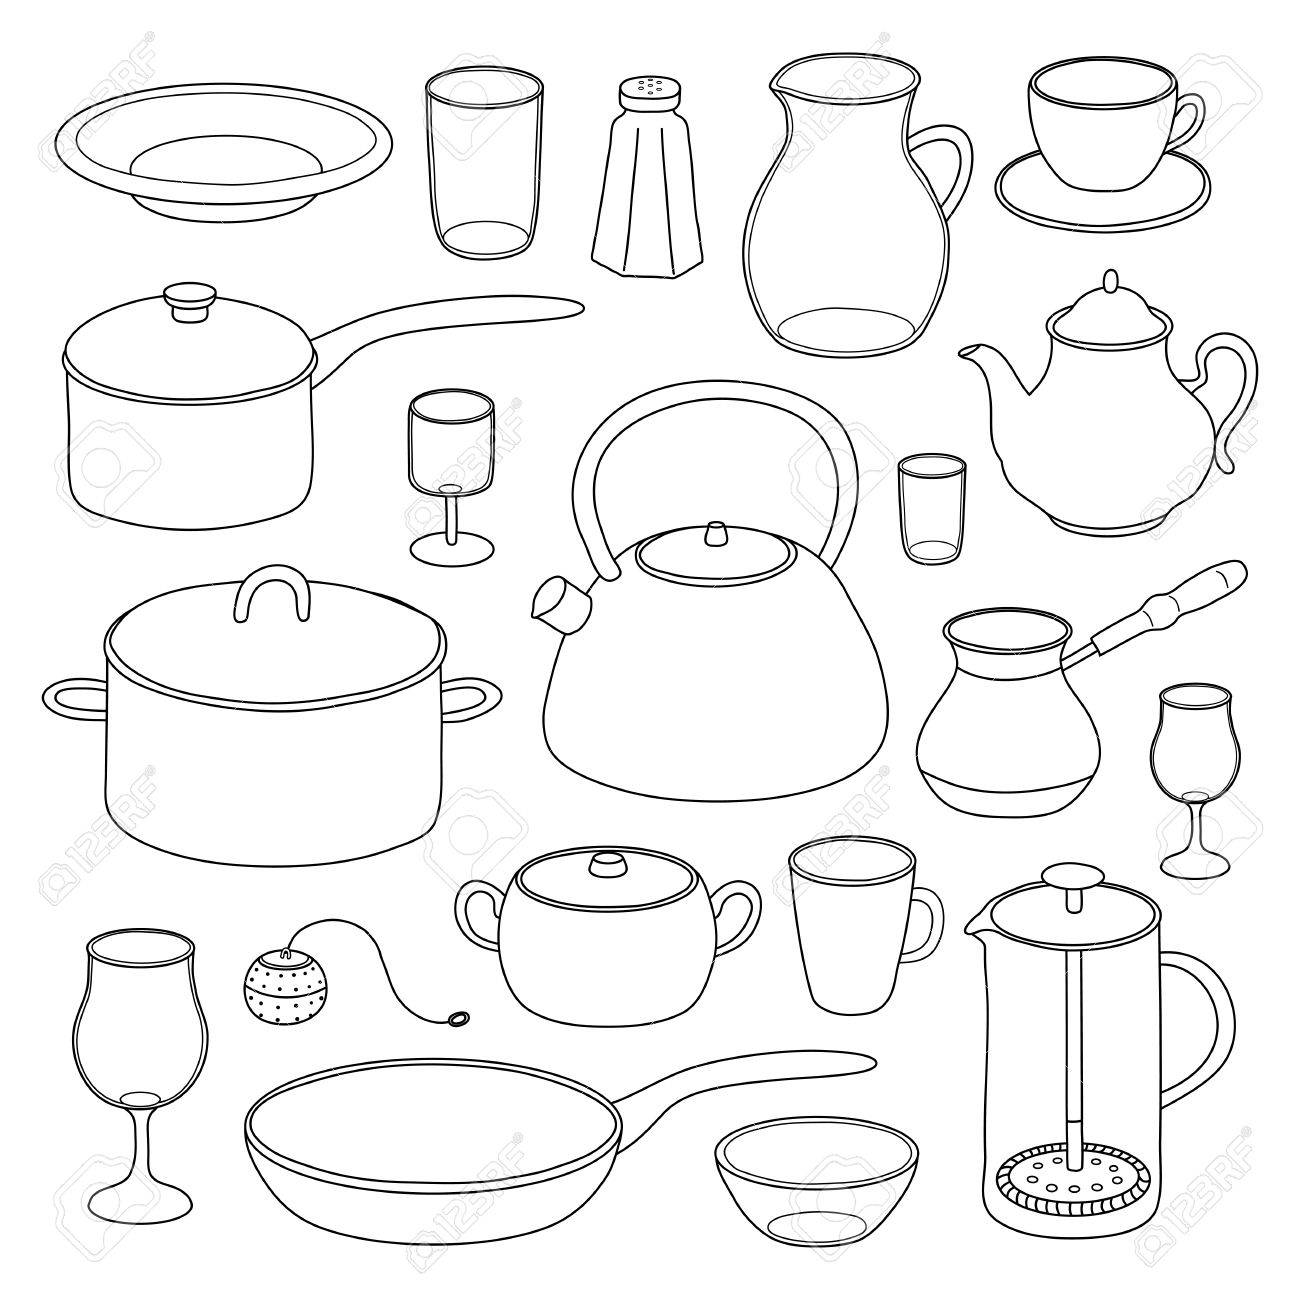 White Kitchen Utensils hand drawn outline kitchen utensils and dishes isolated on white